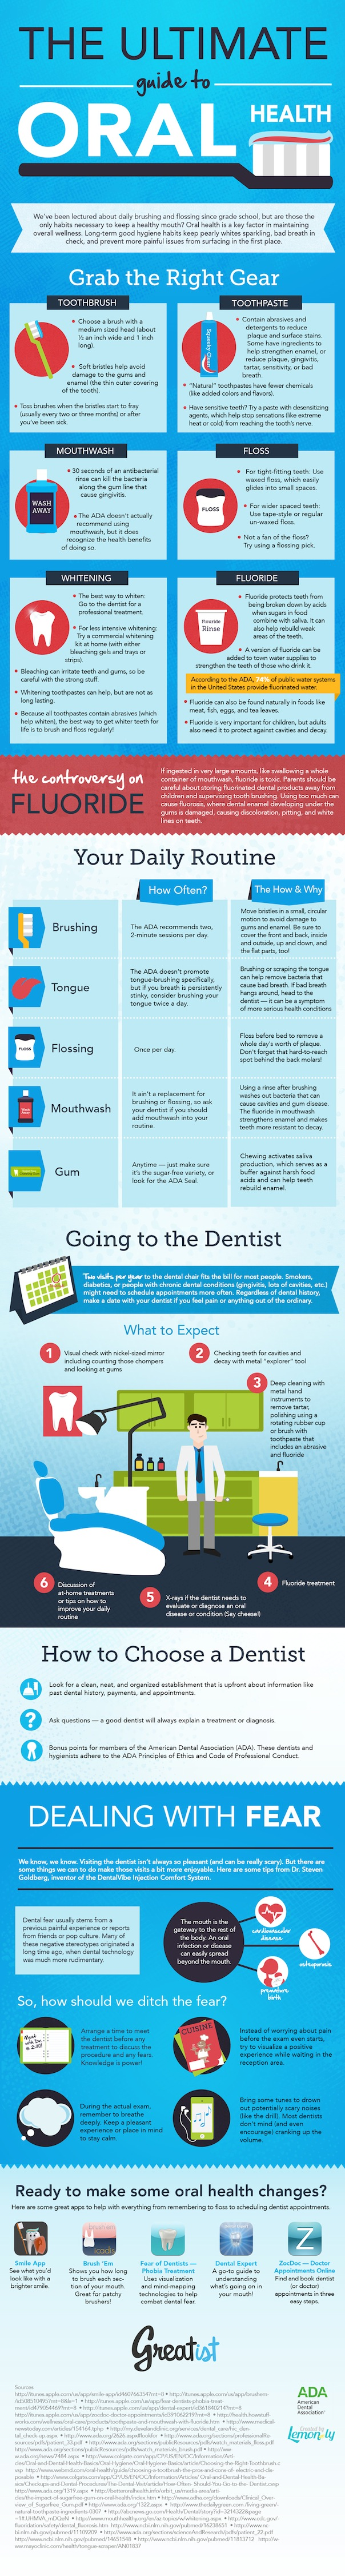 The-Ultimate-Guide-to-Oral-Health